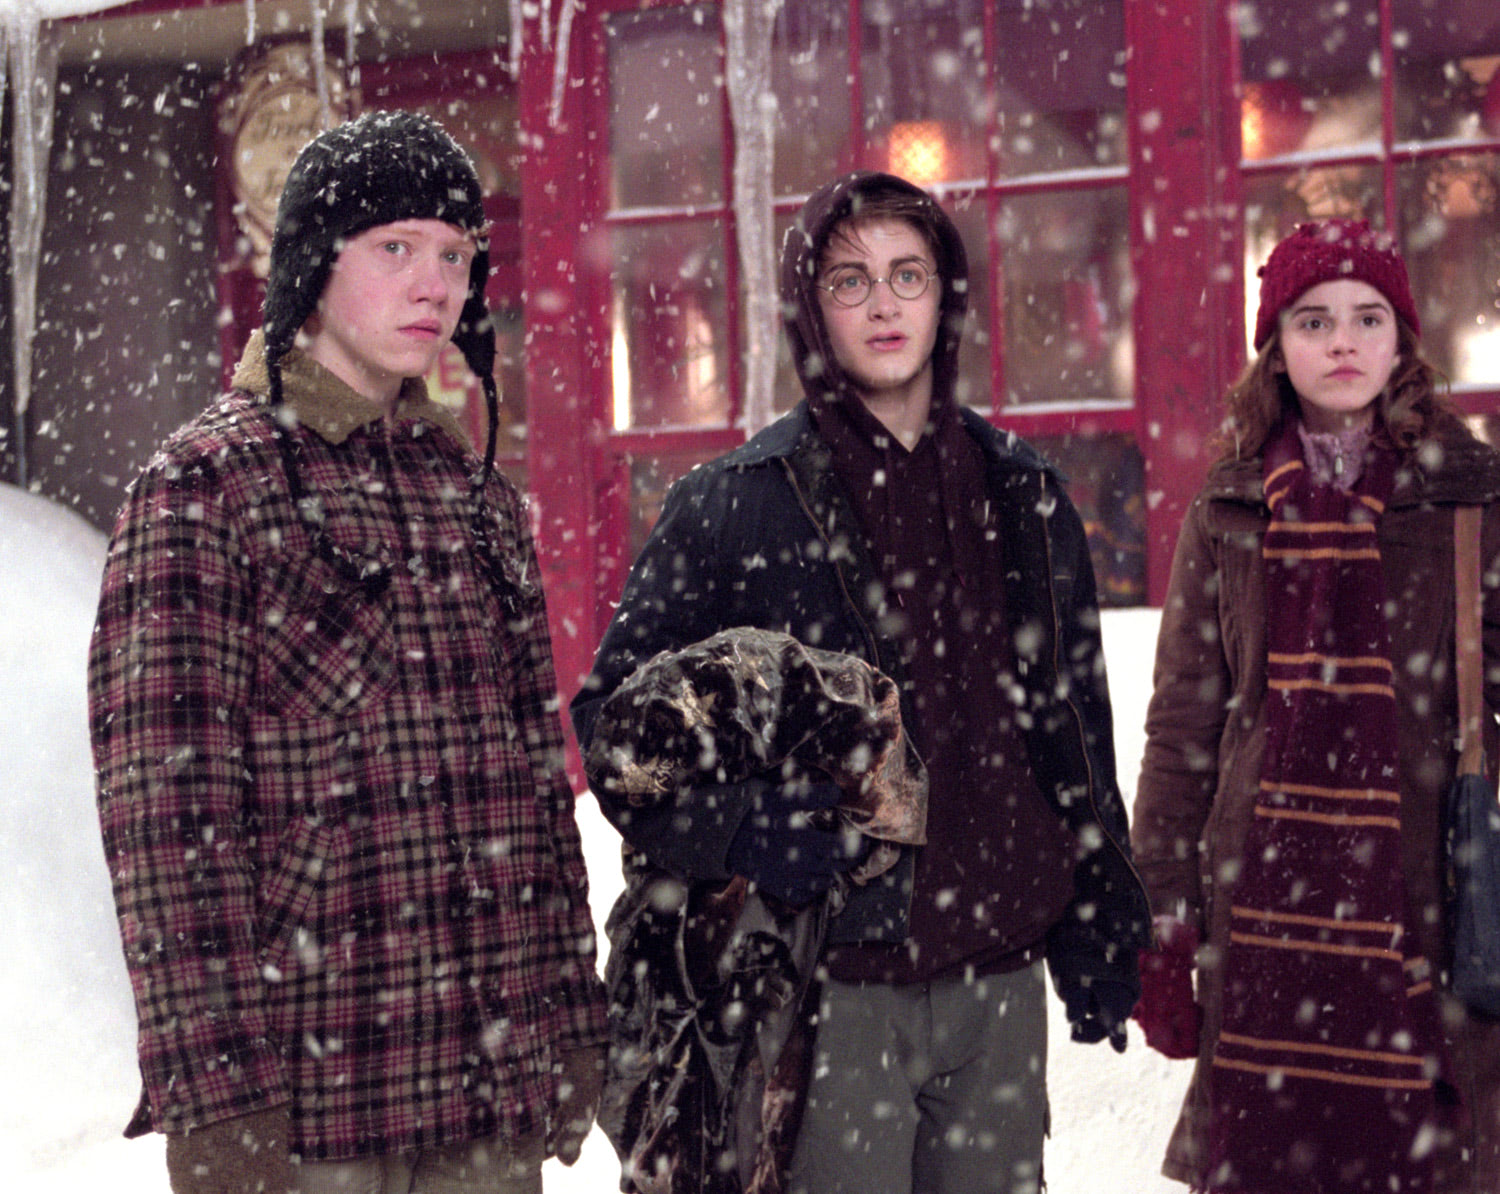 The trio in Hogsmeade